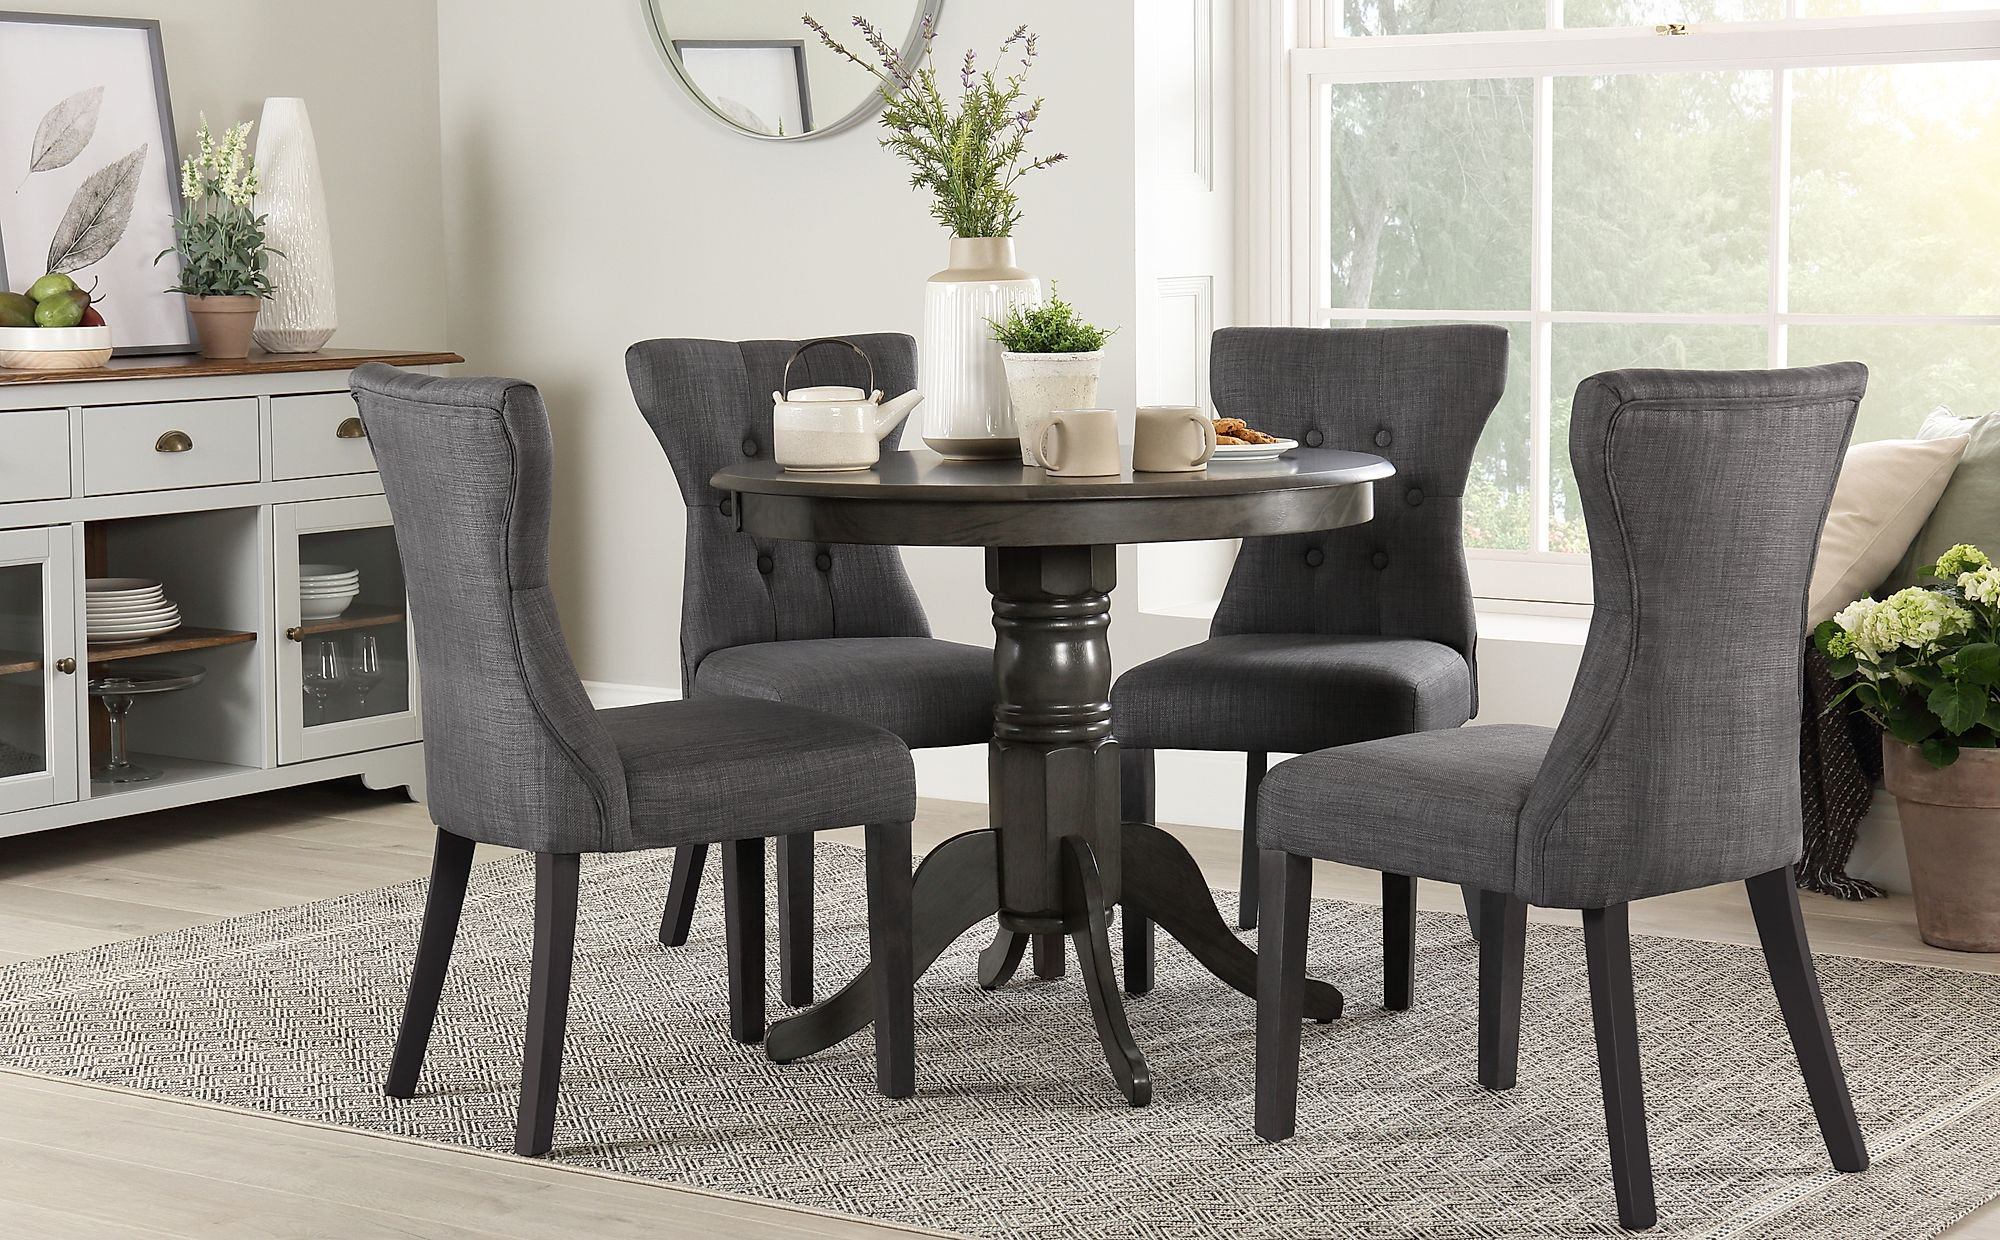 Kingston Round Grey Wood Dining Table with 4 Bewley Slate ...